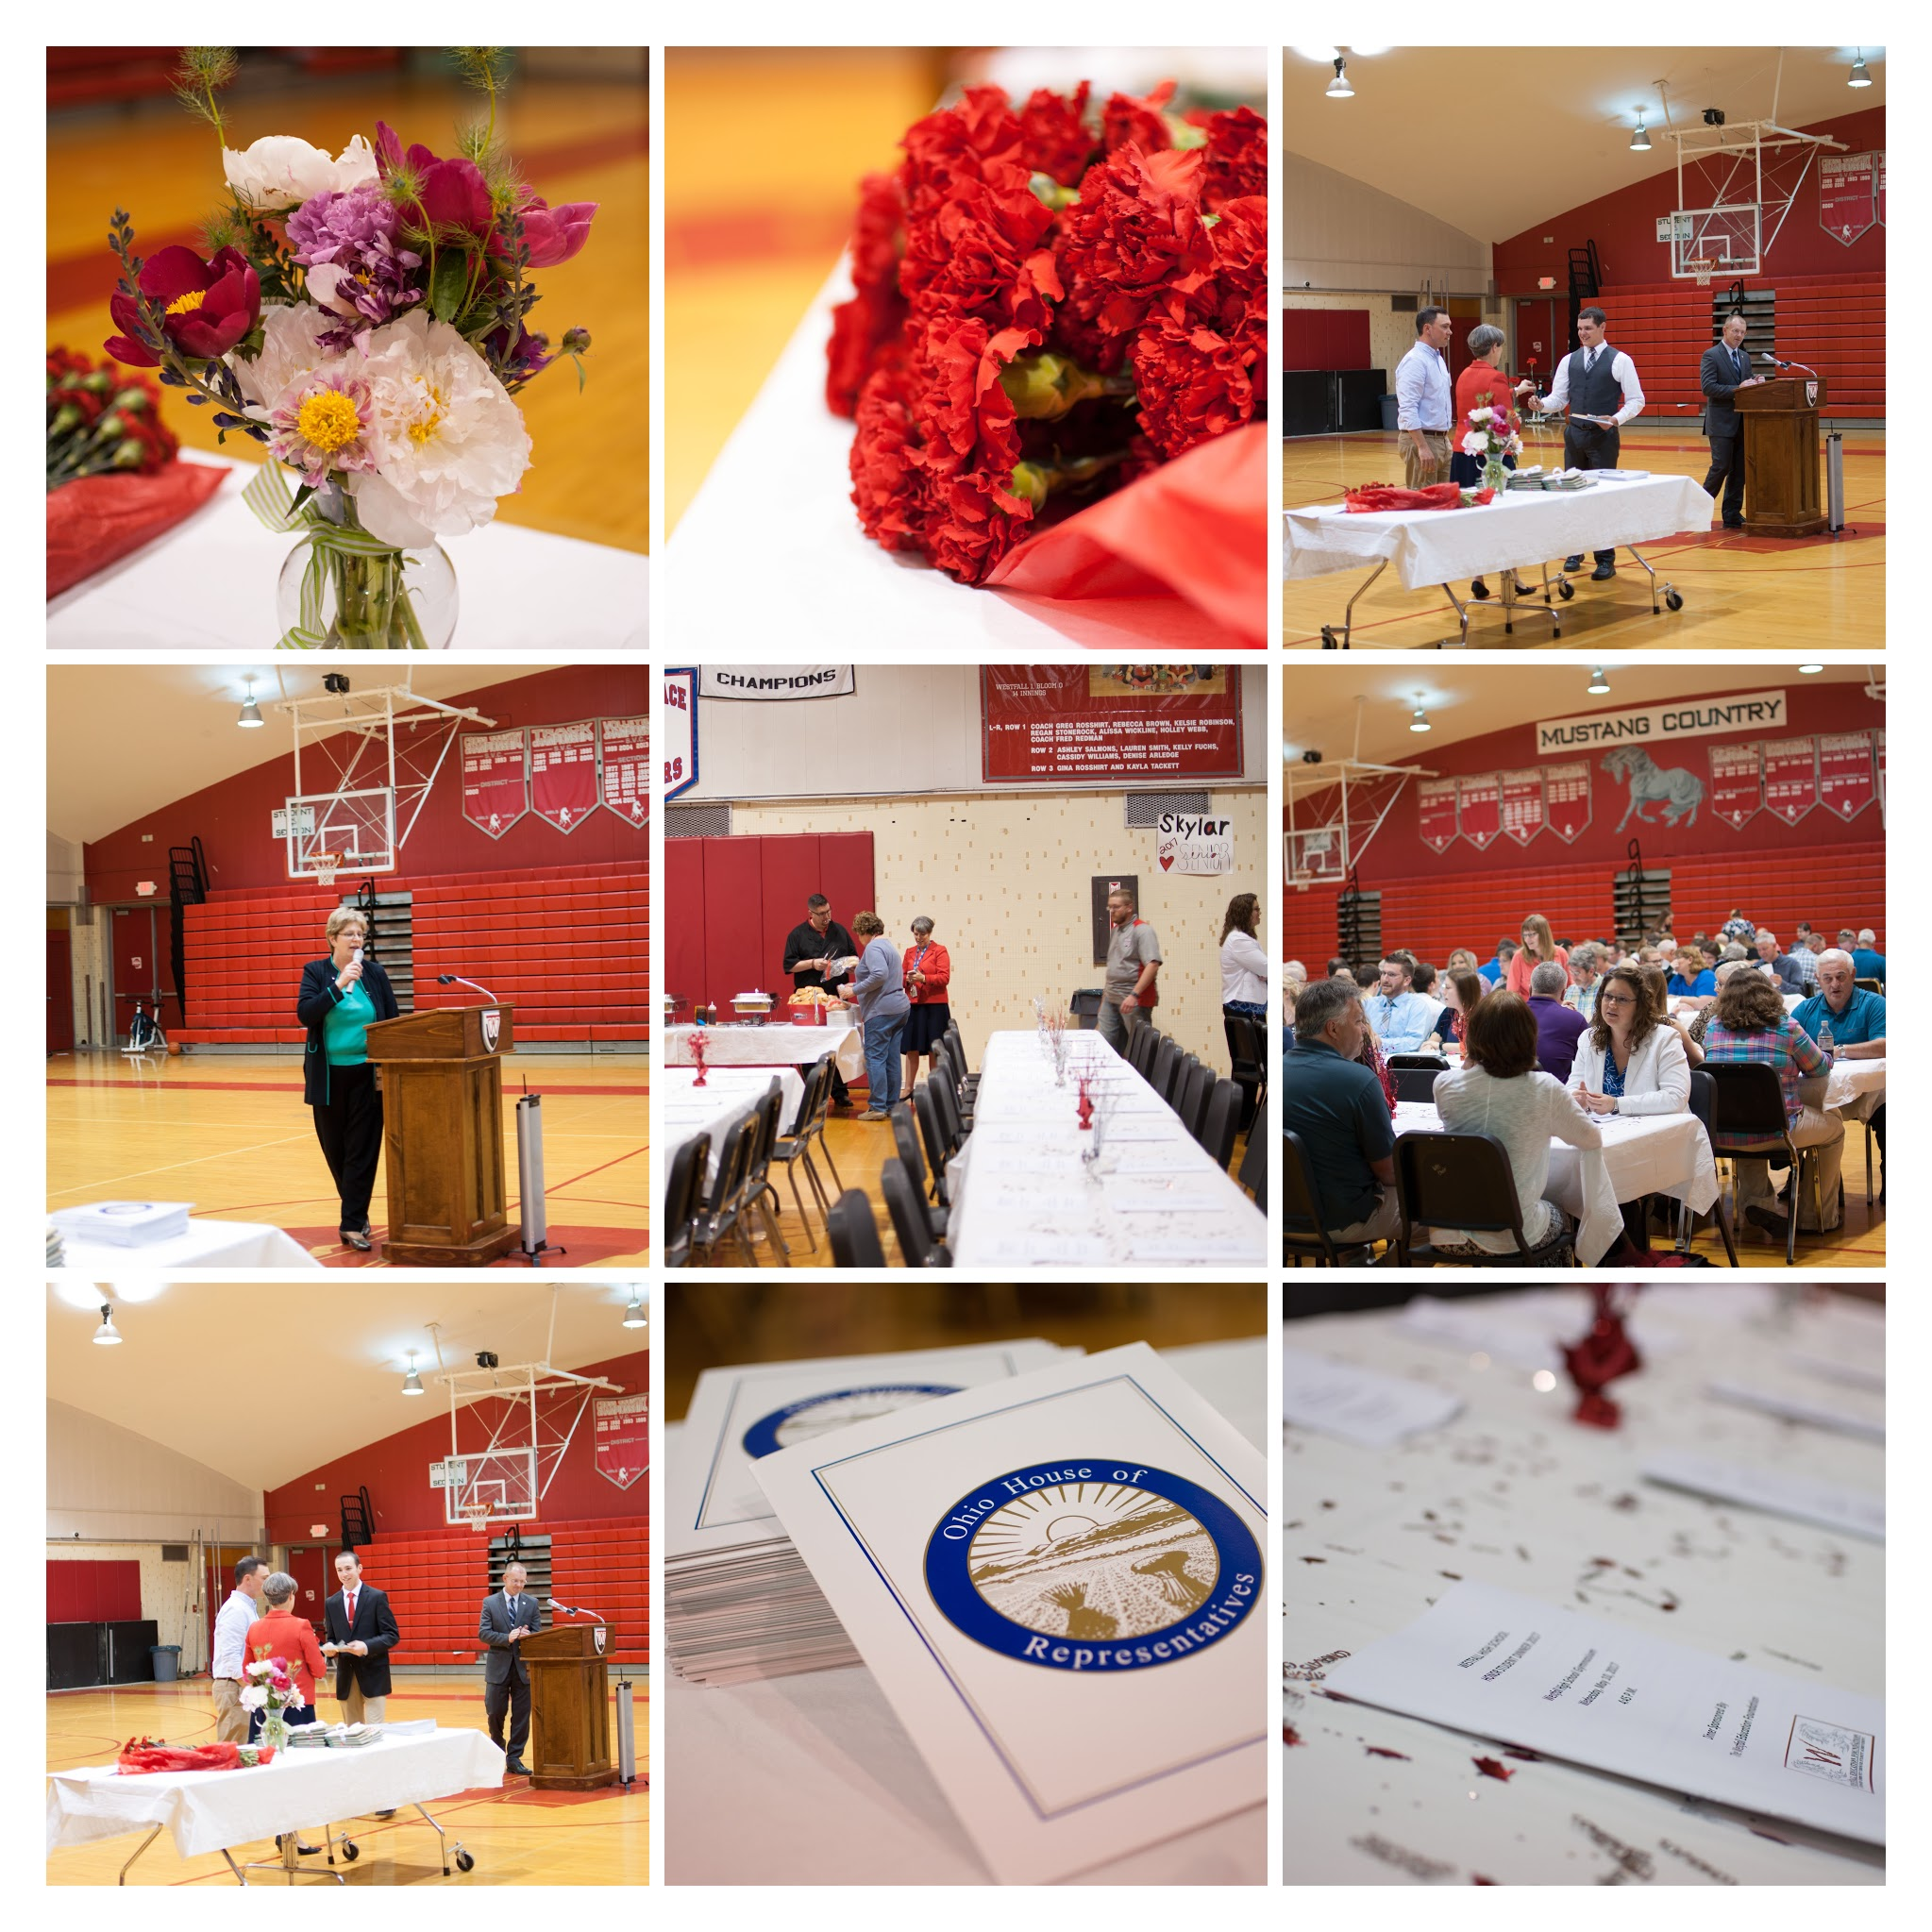 Photos of students and families enjoying dinner and accepting awards.